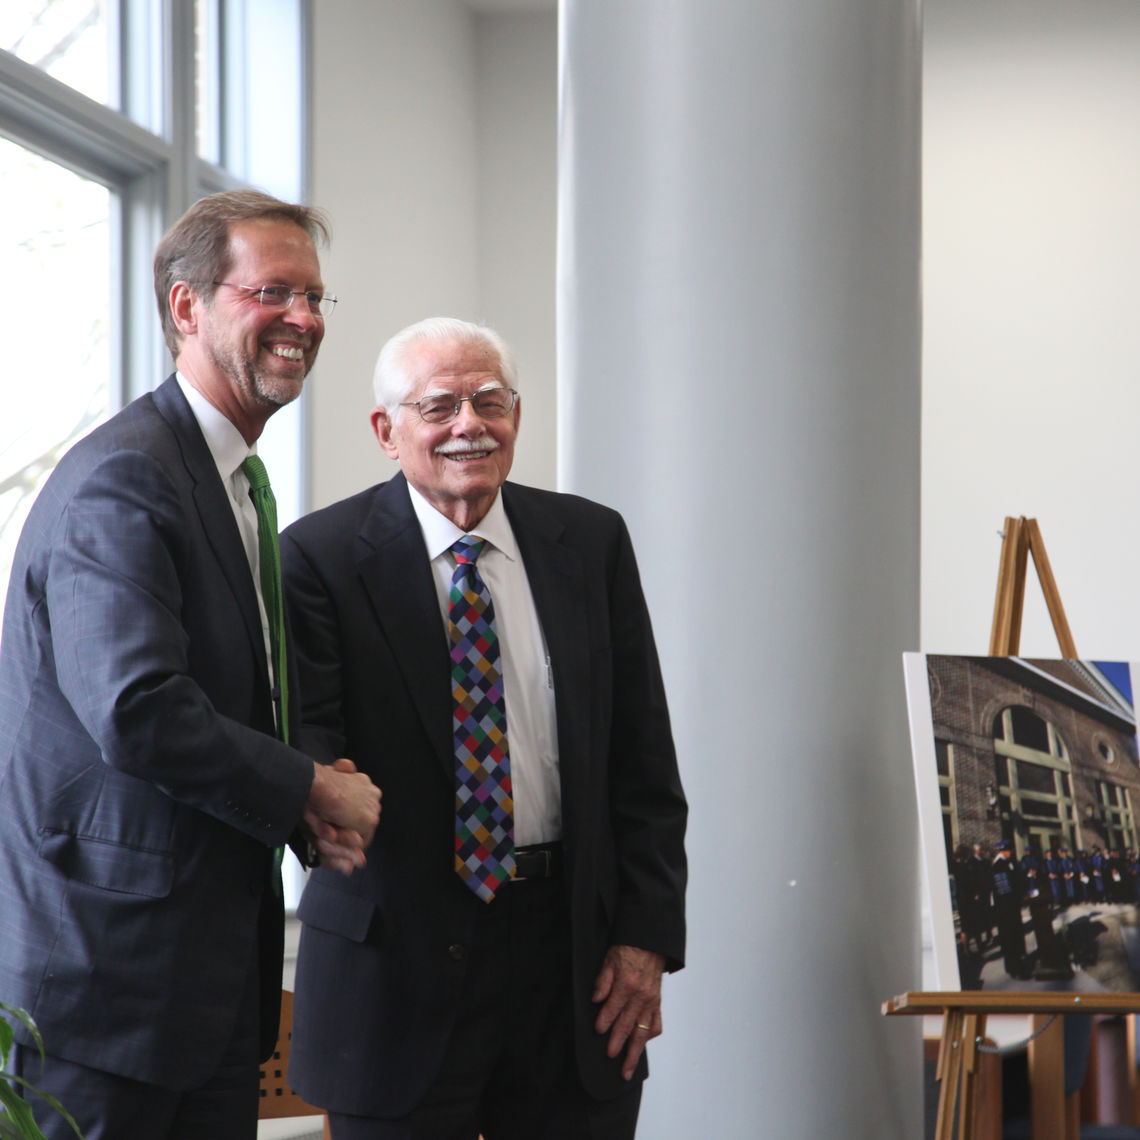 The Martin Library of the Sciences celebrated its 25th anniversary April 21 with a reception and remarks from F&M President Daniel R. Porterfield and alumnus Aaron J. Martin '50, a chemistry professor and an F&M emeriti trustee for whom the library is named.